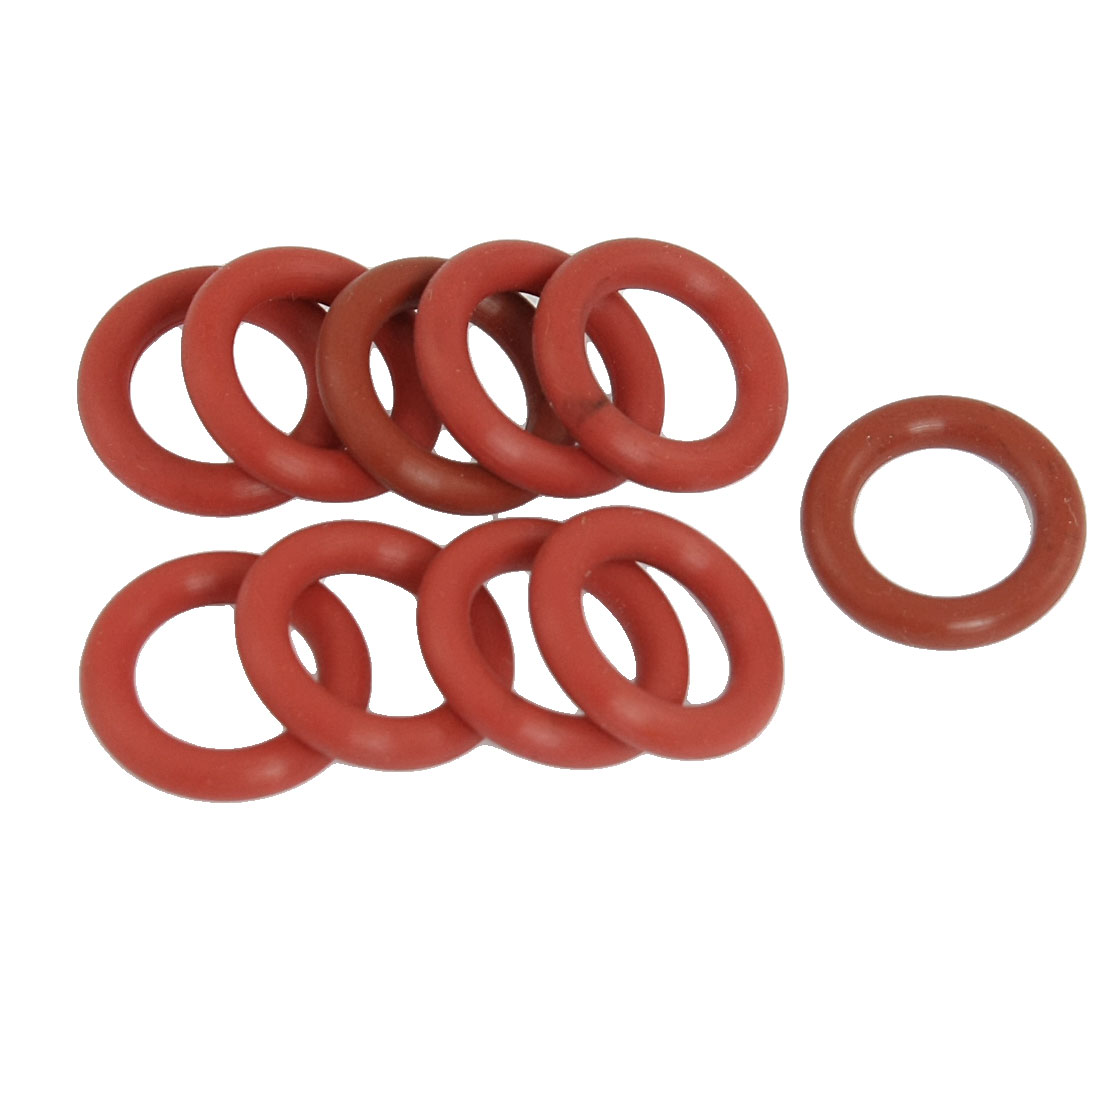 10 x Brick Red Tube Damper Silicone O Rings Seal Gaskets 12mm x 19mm x 3.5mm